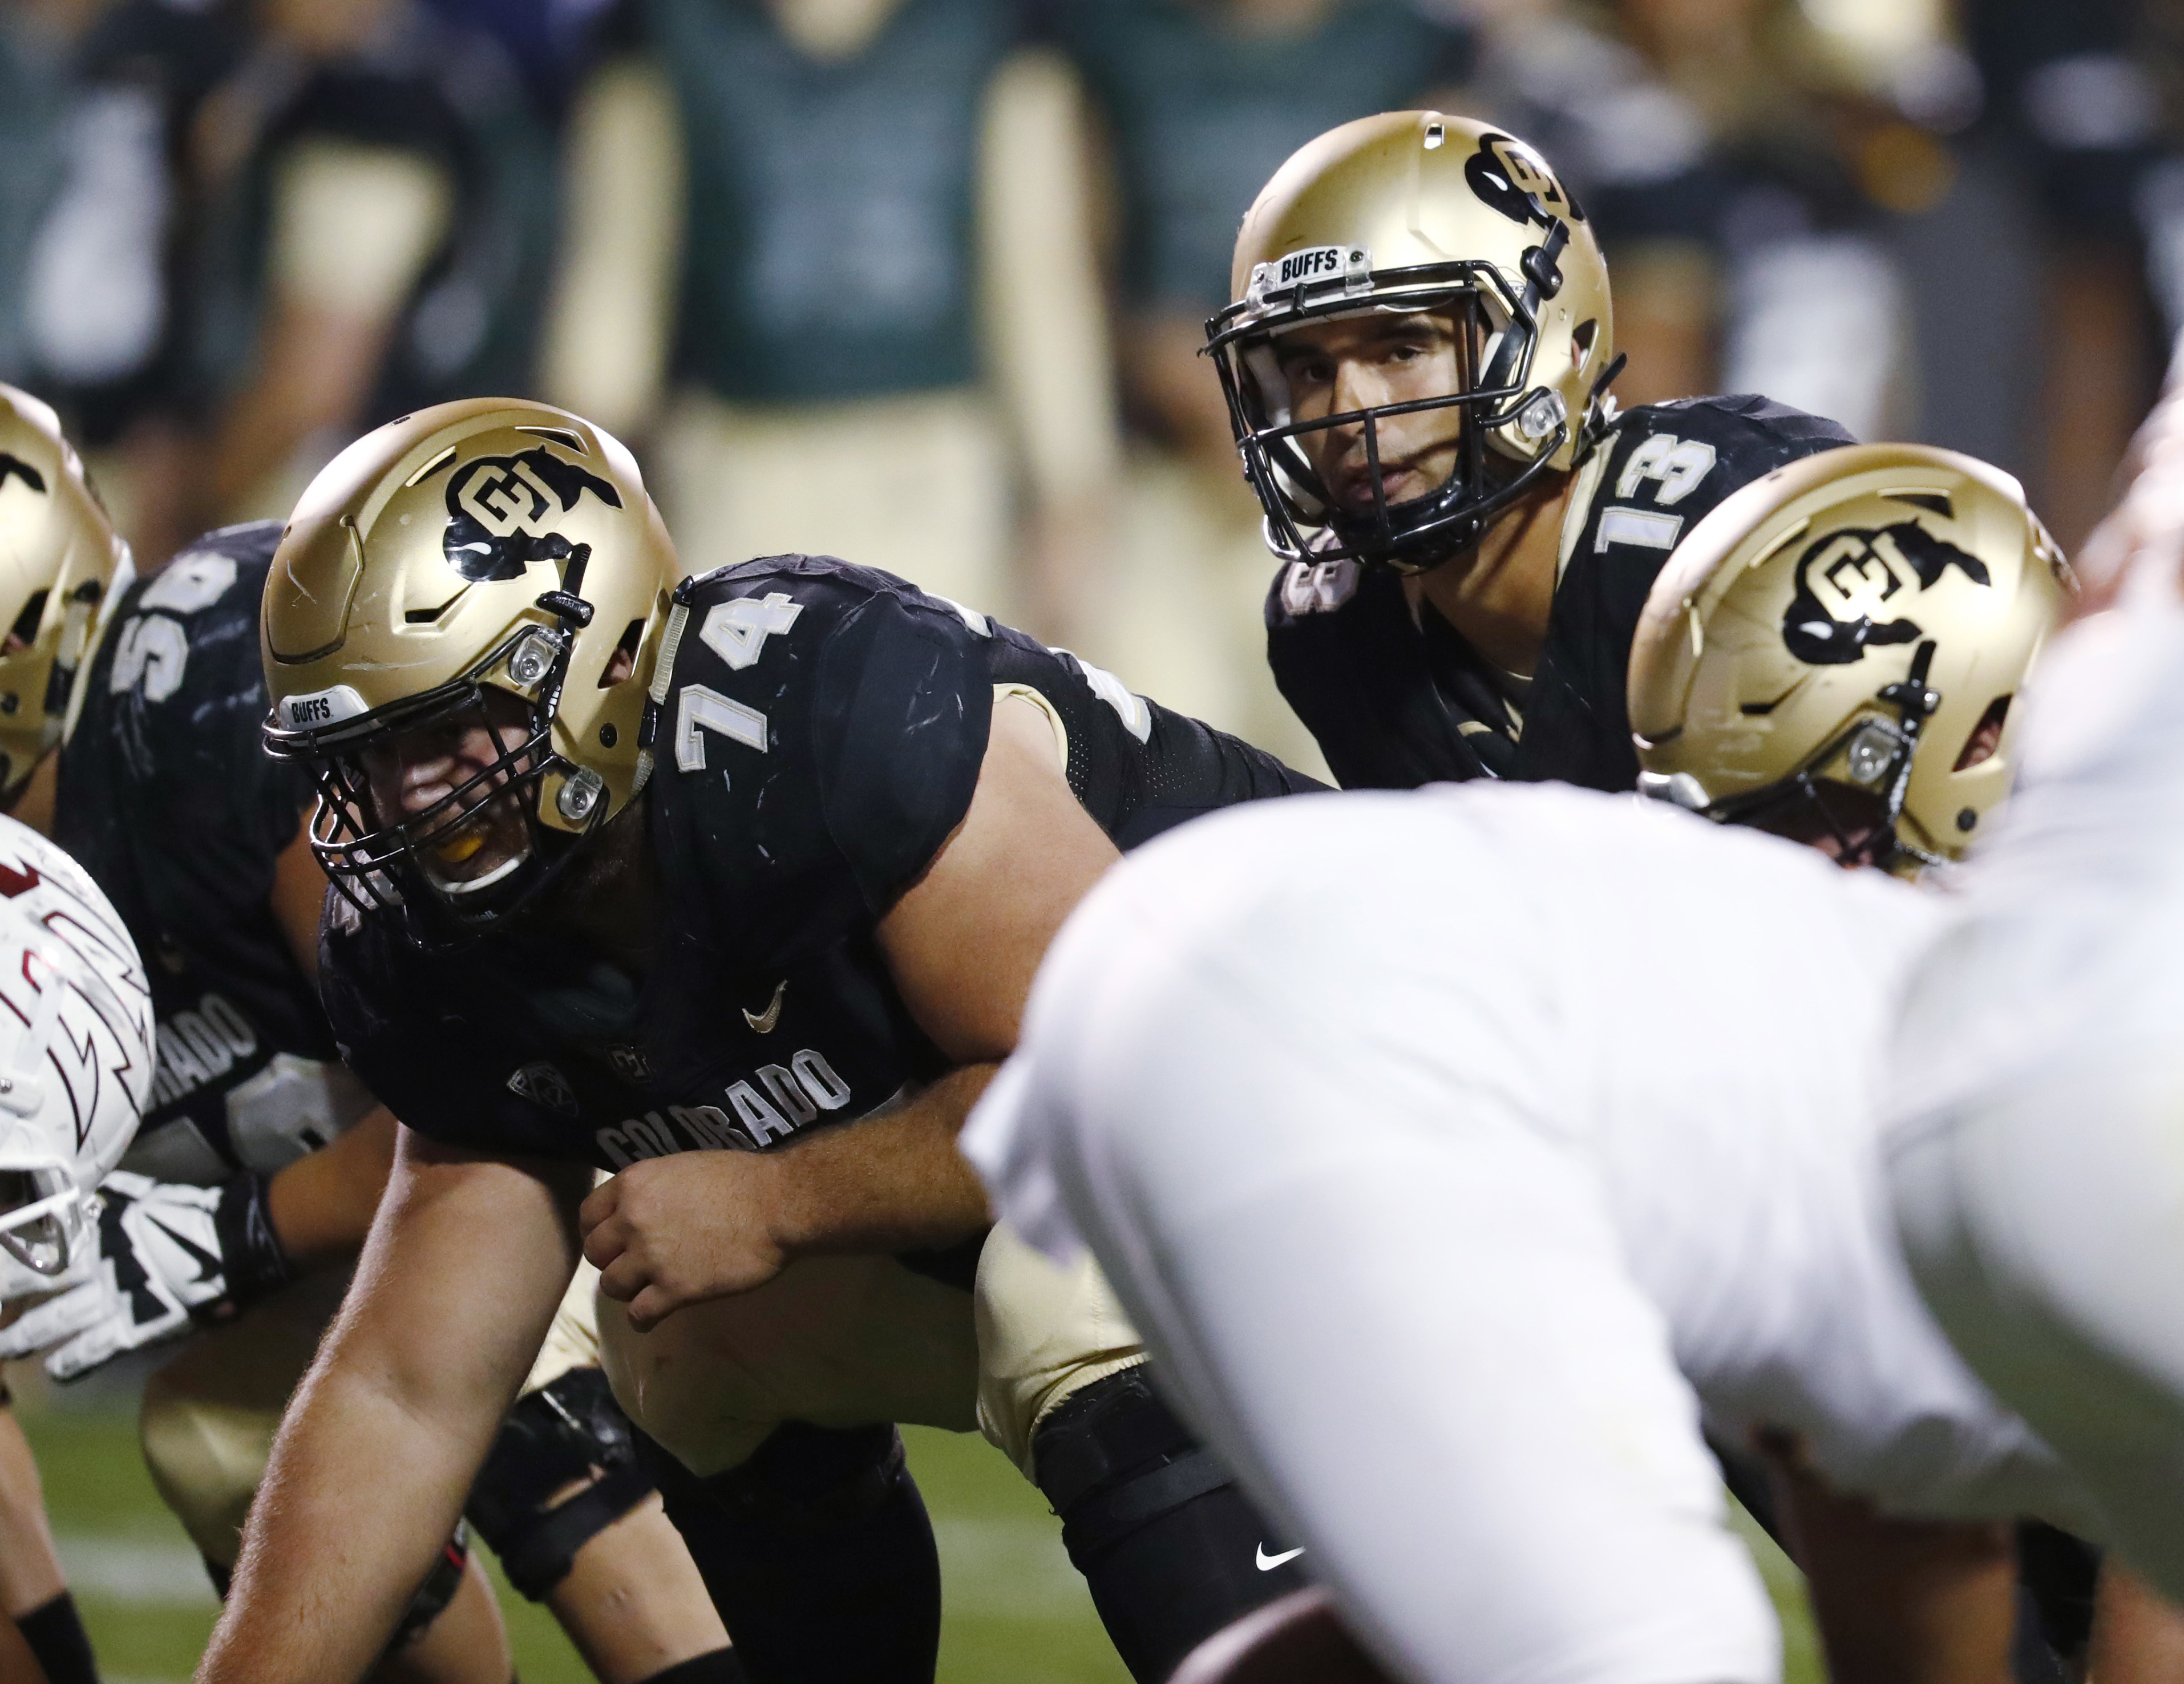 In this Saturday, Oct. 15, 2016 photo, Colorado center Alex Kelley, left, waits to snap the ball to quarterback Sefo Liufau during the second half of an NCAA college football game against Arizona State  in Boulder, Colo. Kelley is following in the footste